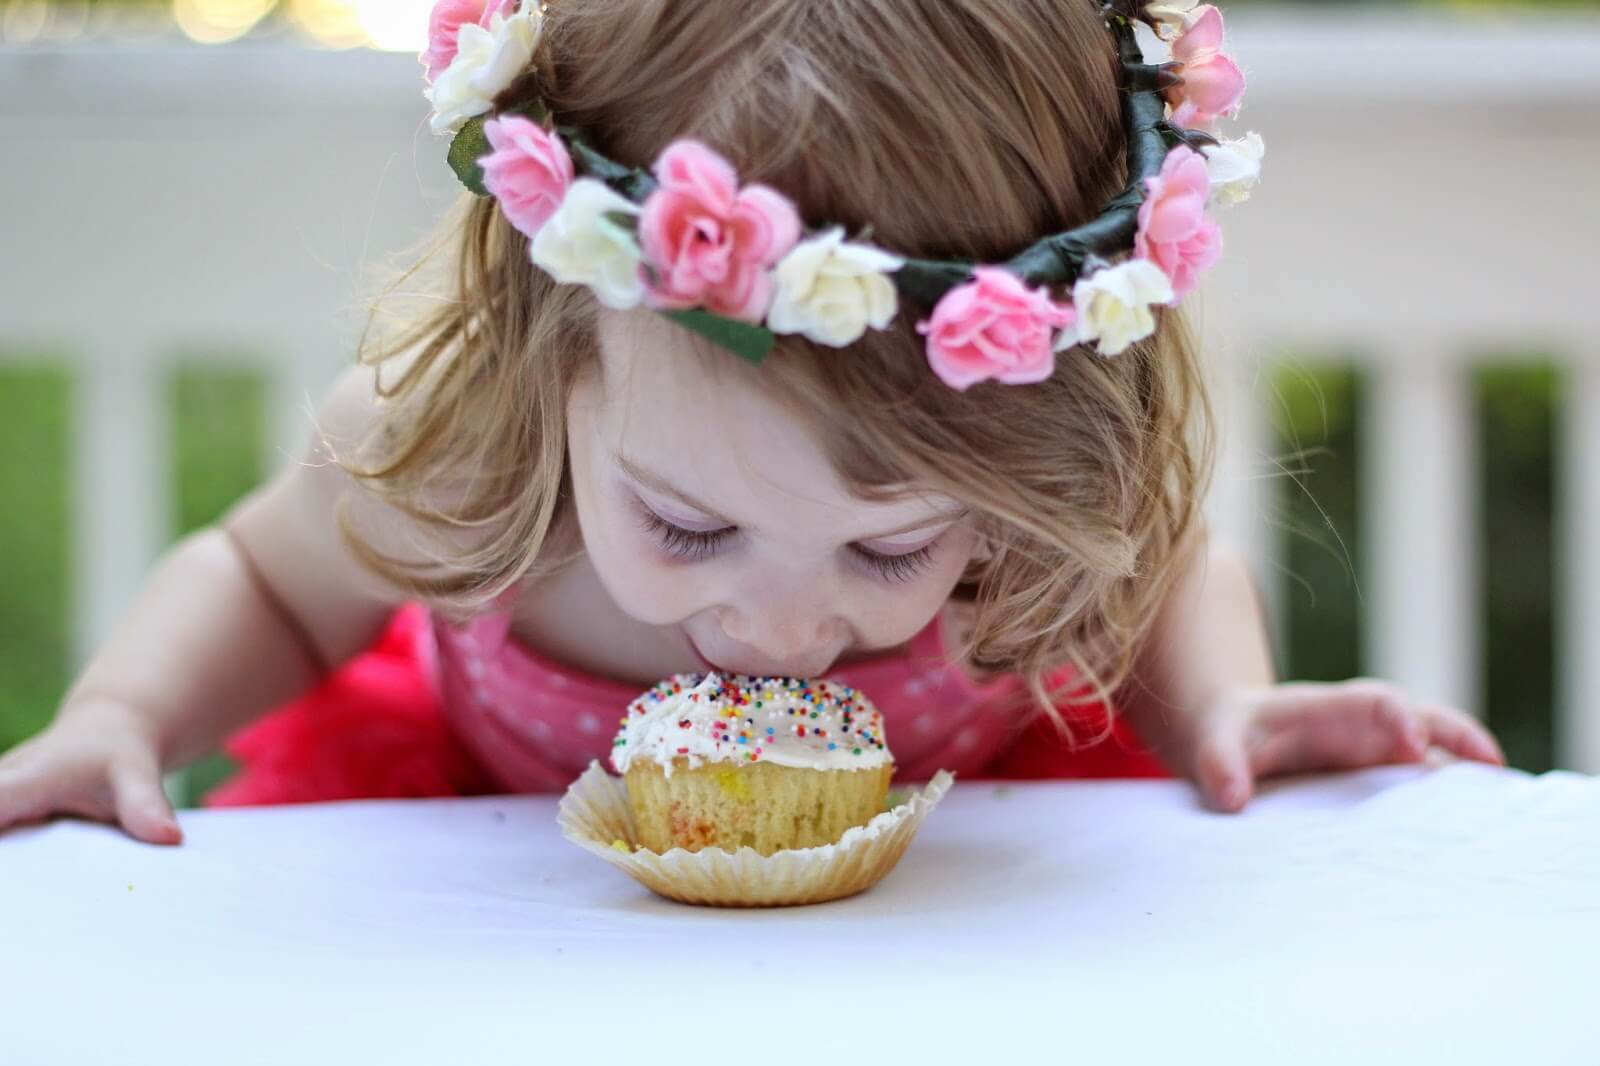 cute little girl eating cupcake